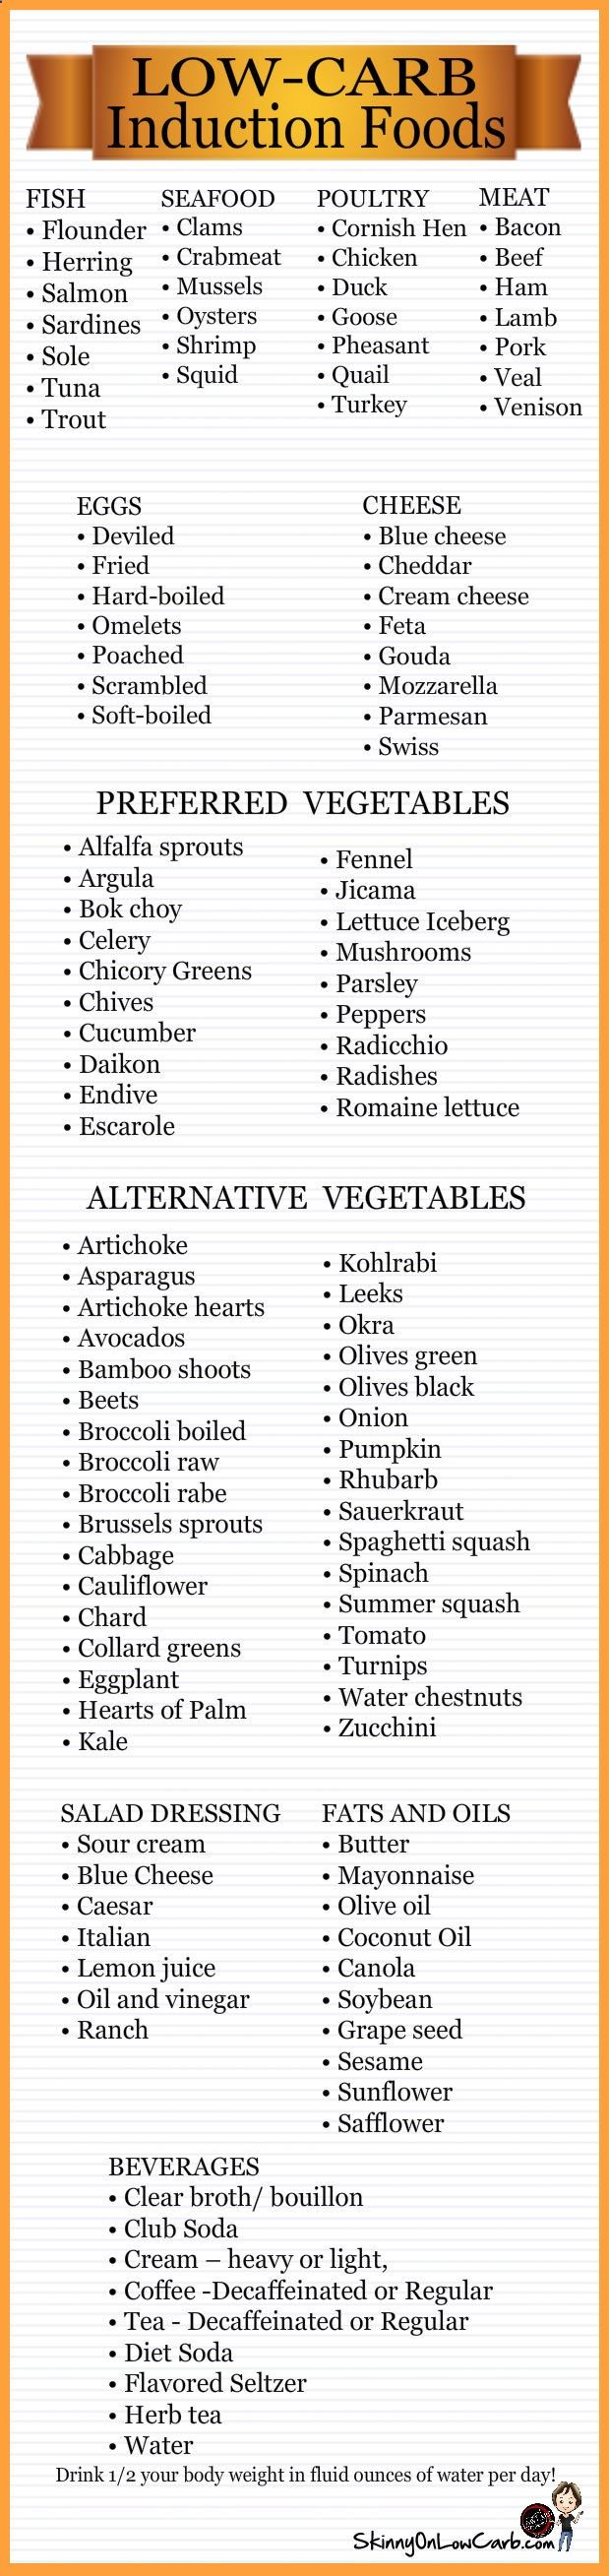 I am looking to take off those last few pounds b4 the beach! So I decided to go onto induction for the last 2 weeks before vacation. This quick and easy to see chart of #lowcarbinduction foods will help to keep me on track! You can find more like it, low-carb tips & thousands of certified low-carb recipes all FREE on my website! SkinnyOnLowCarb.com Visit our Website to learn more about it...   http://maverixx.net/tips-and-strategies-on-the-best-way-to-take-care-of-yourself-when-having-...